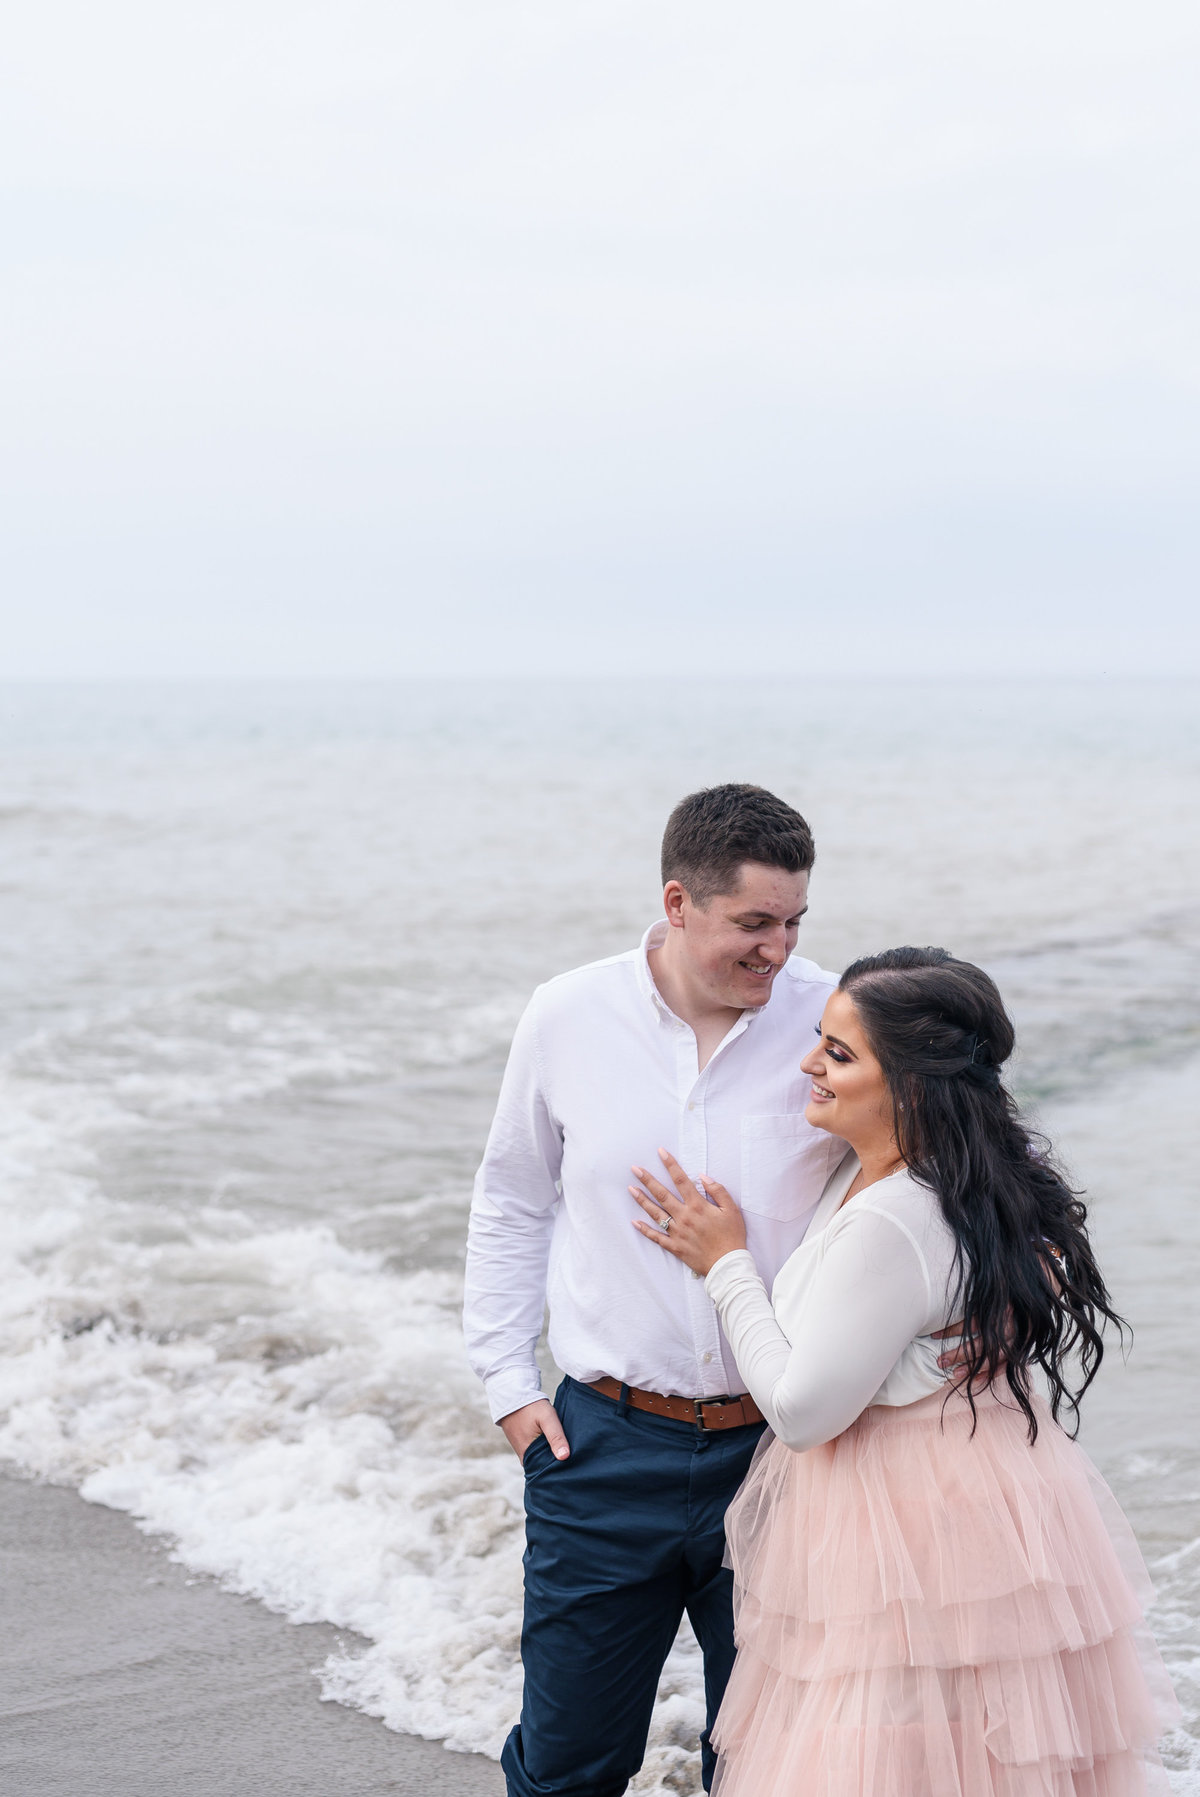 atwater-beach-engagement-milwaukee-the-paper-elephant-031